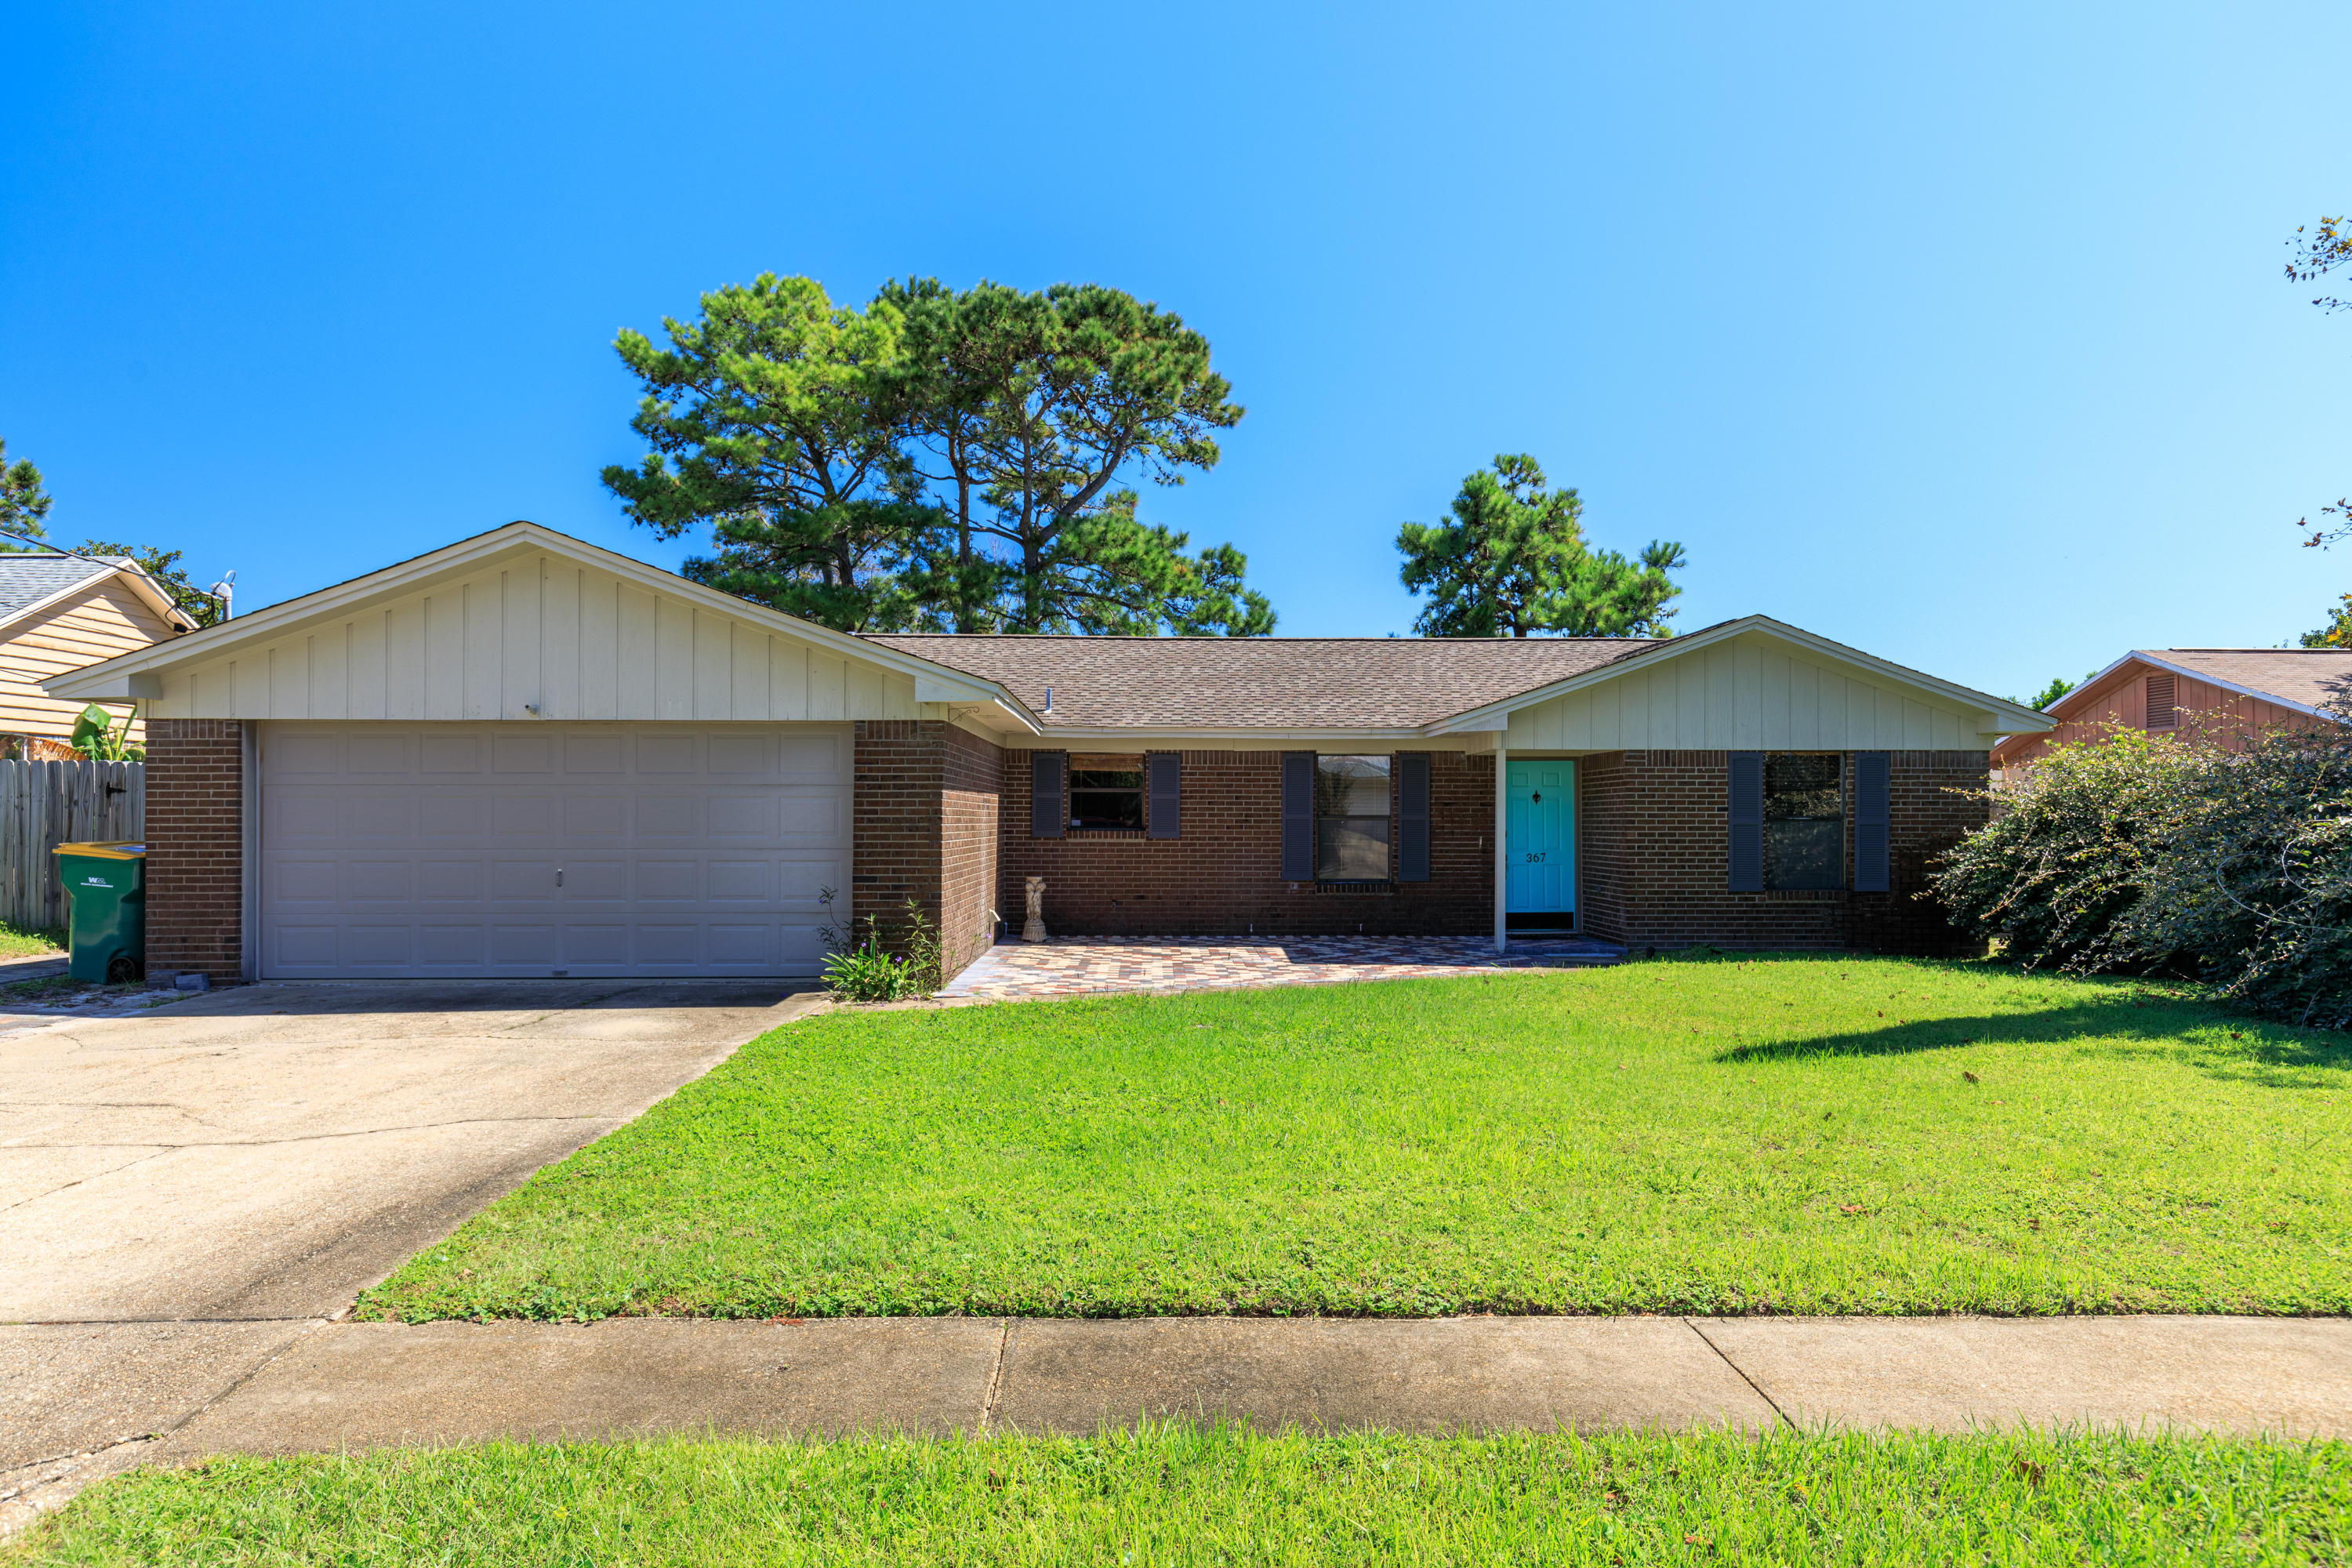 Photo of home for sale at 367 Evergreen, Destin FL